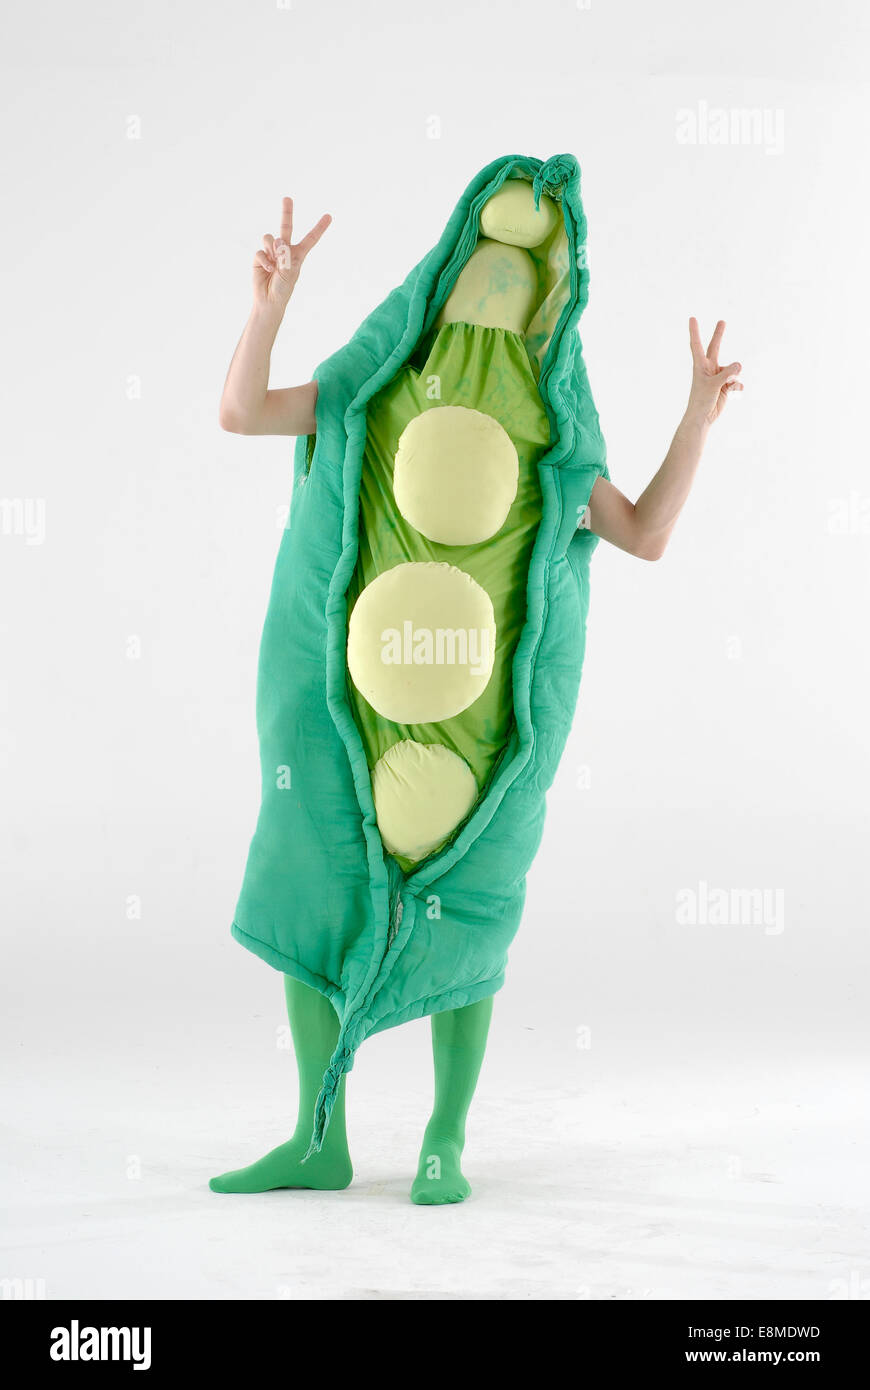 1fc1b649a7eca runner bean / peas in a pod fancy dress comedy costume could be used for a  marathon as a comedy vegetable outfit